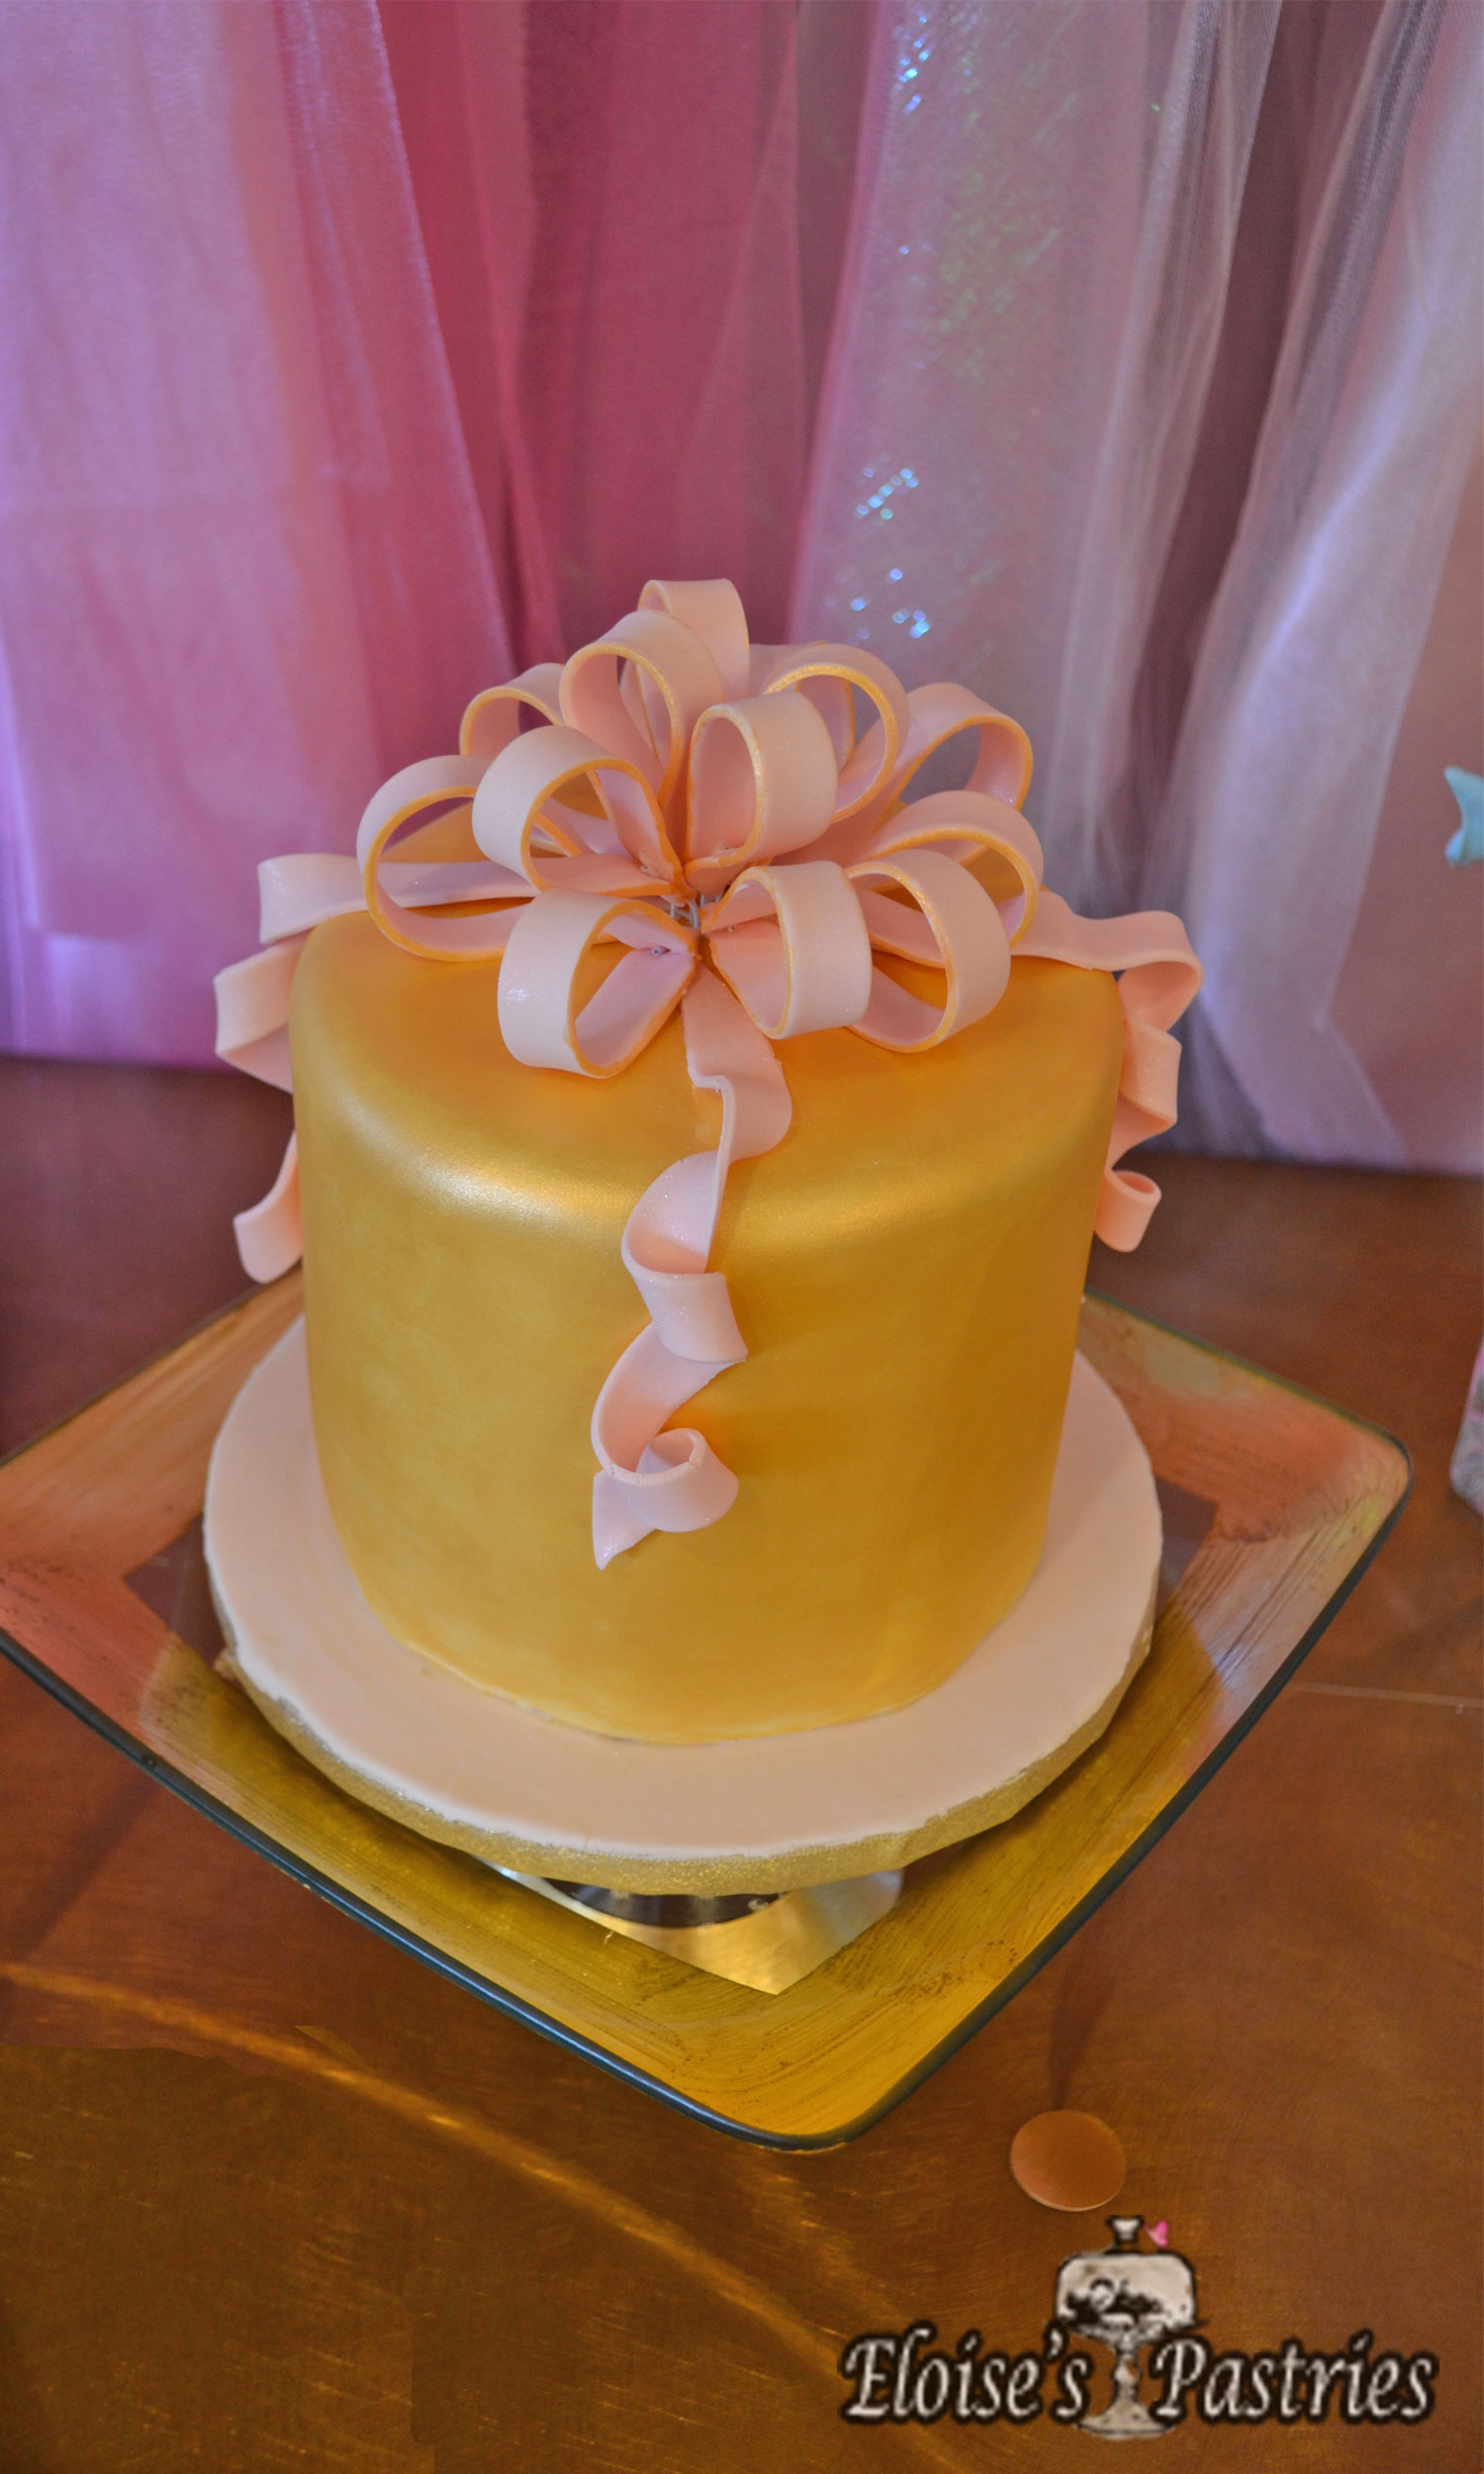 Gold Package Birthday Cake for Her